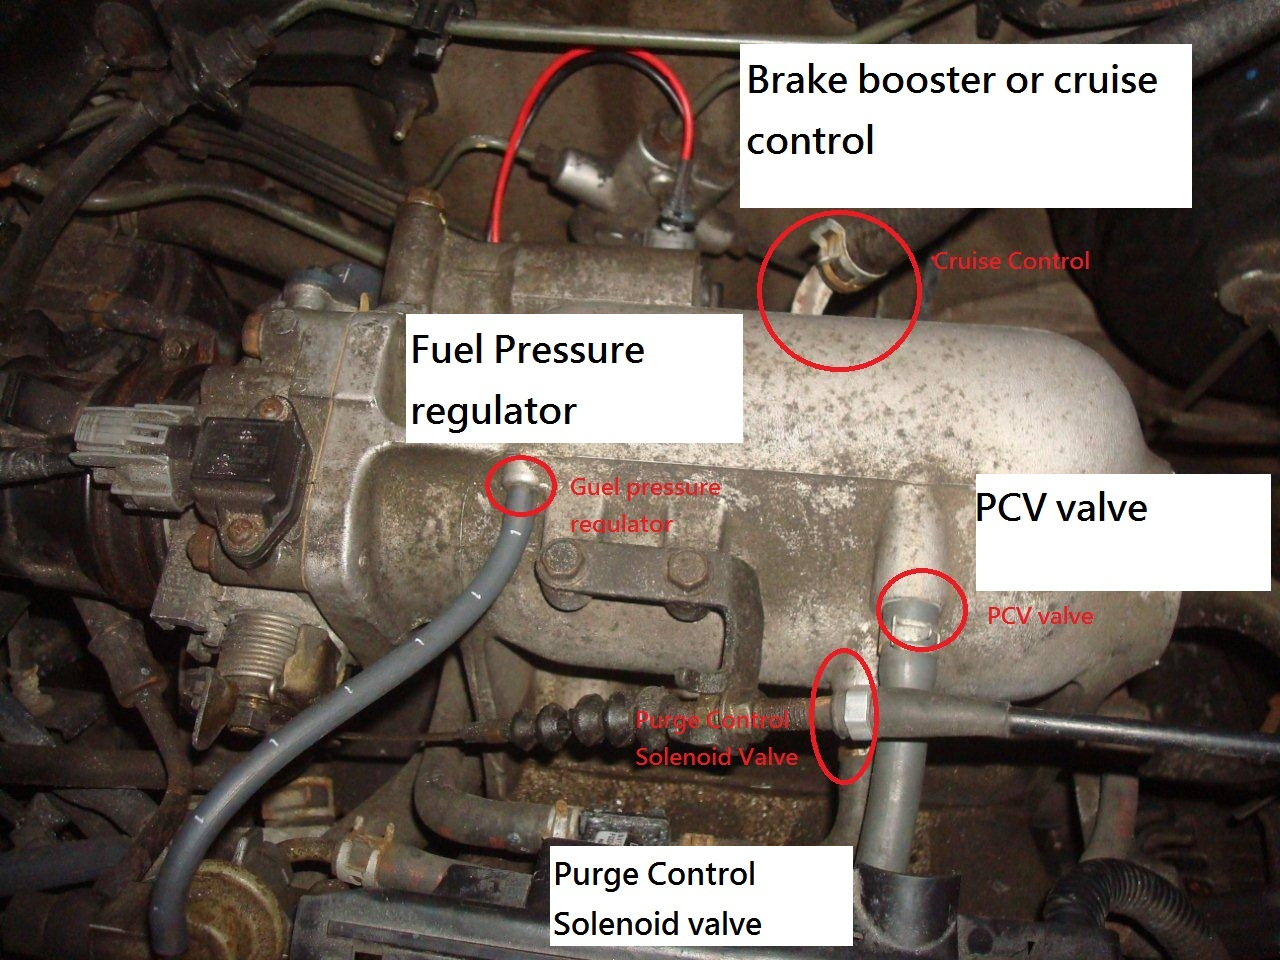 Honda Civic Vtec Solenoid additionally Washer Fluid Level Sensor besides Honda Civic Vtec Solenoid moreover 2002 Honda CR V Vtec Solenoid Location as well Honda Civic D16Y8 Engine. on d16y8 wiring diagram